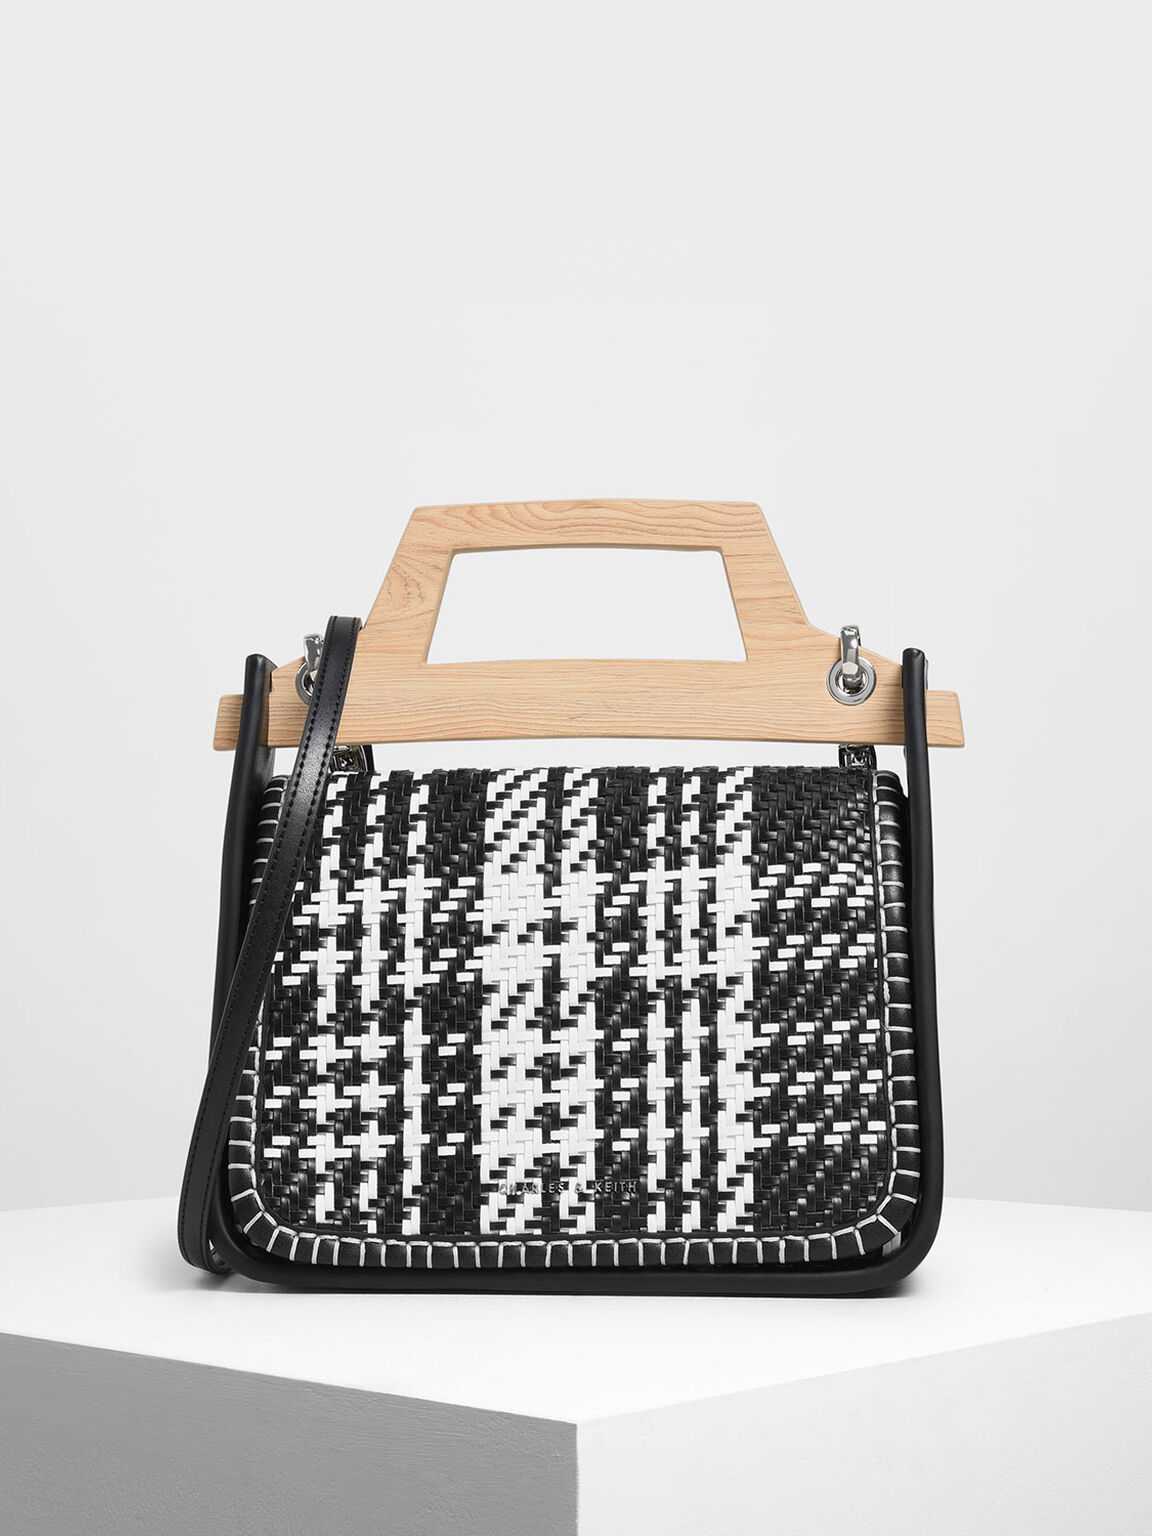 Woven Wood-Effect Top Handle Bag, Black, hi-res